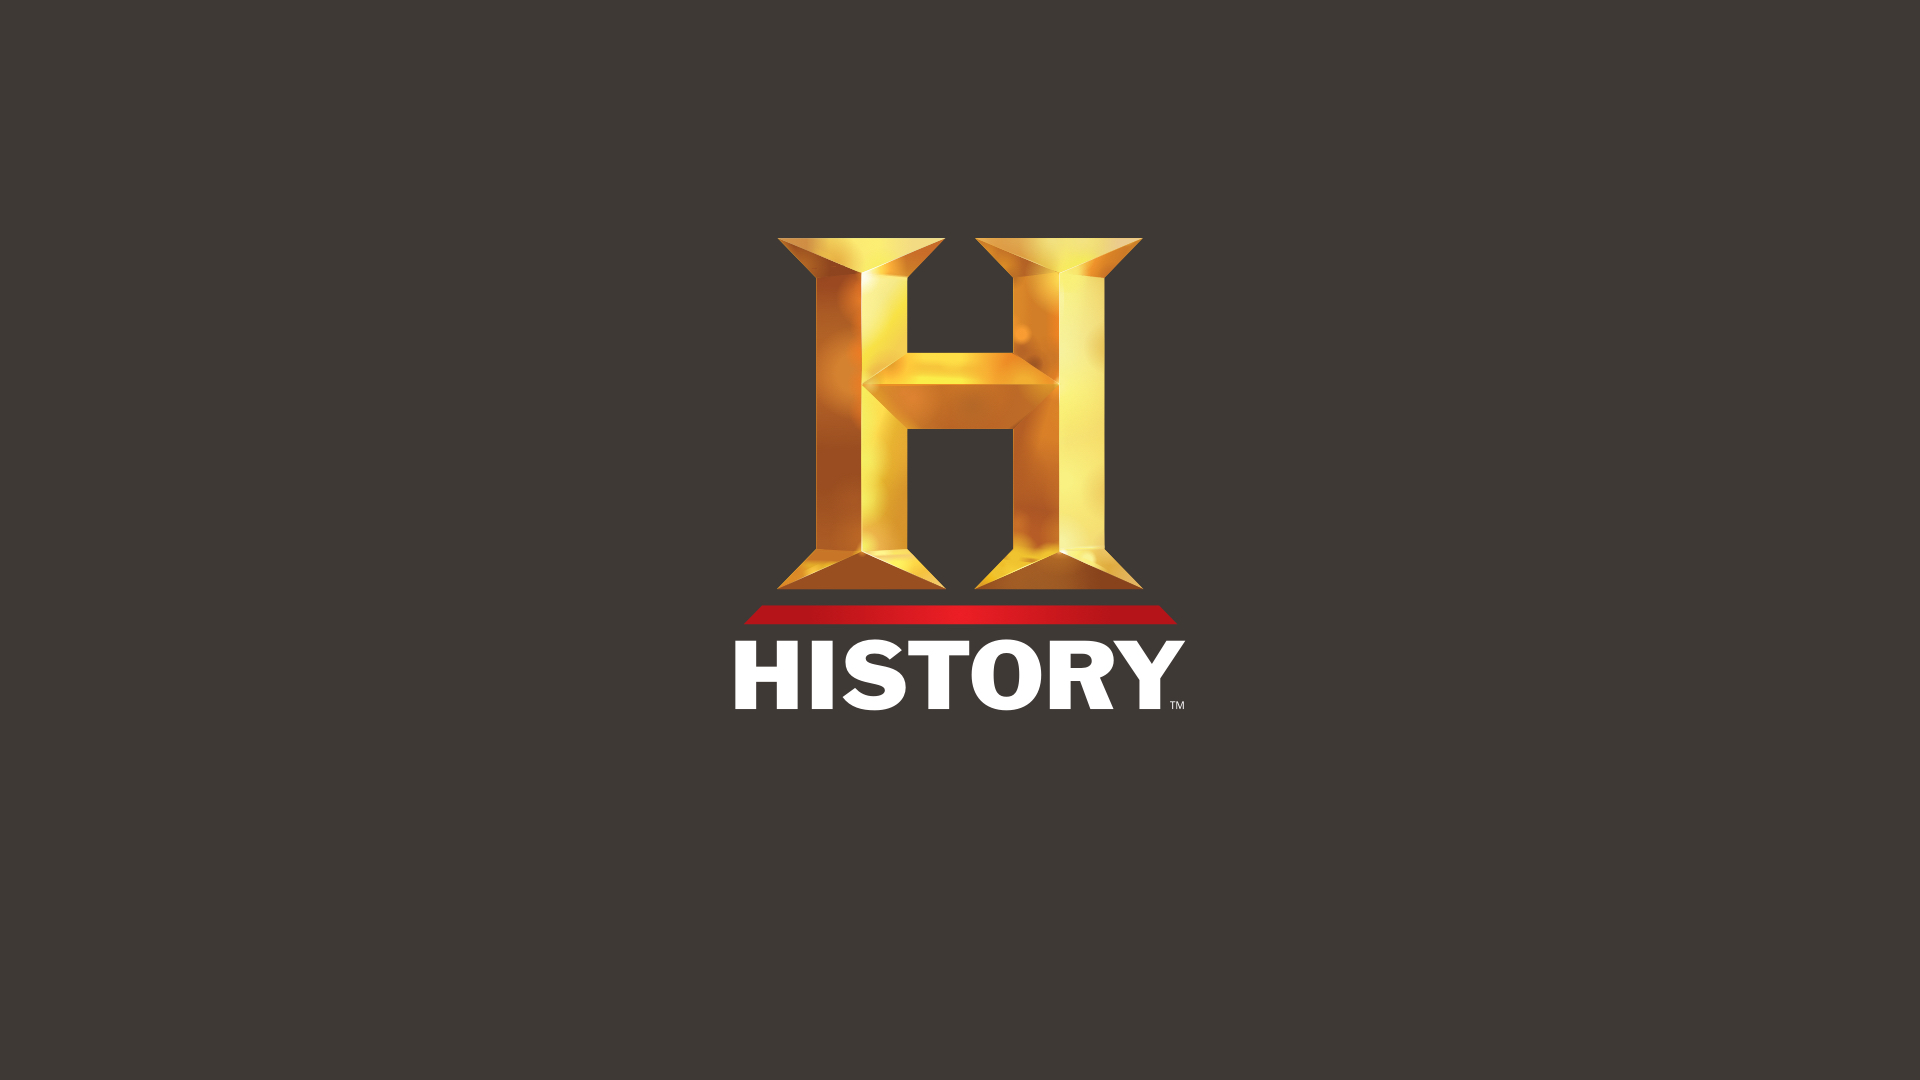 Why We Study History?